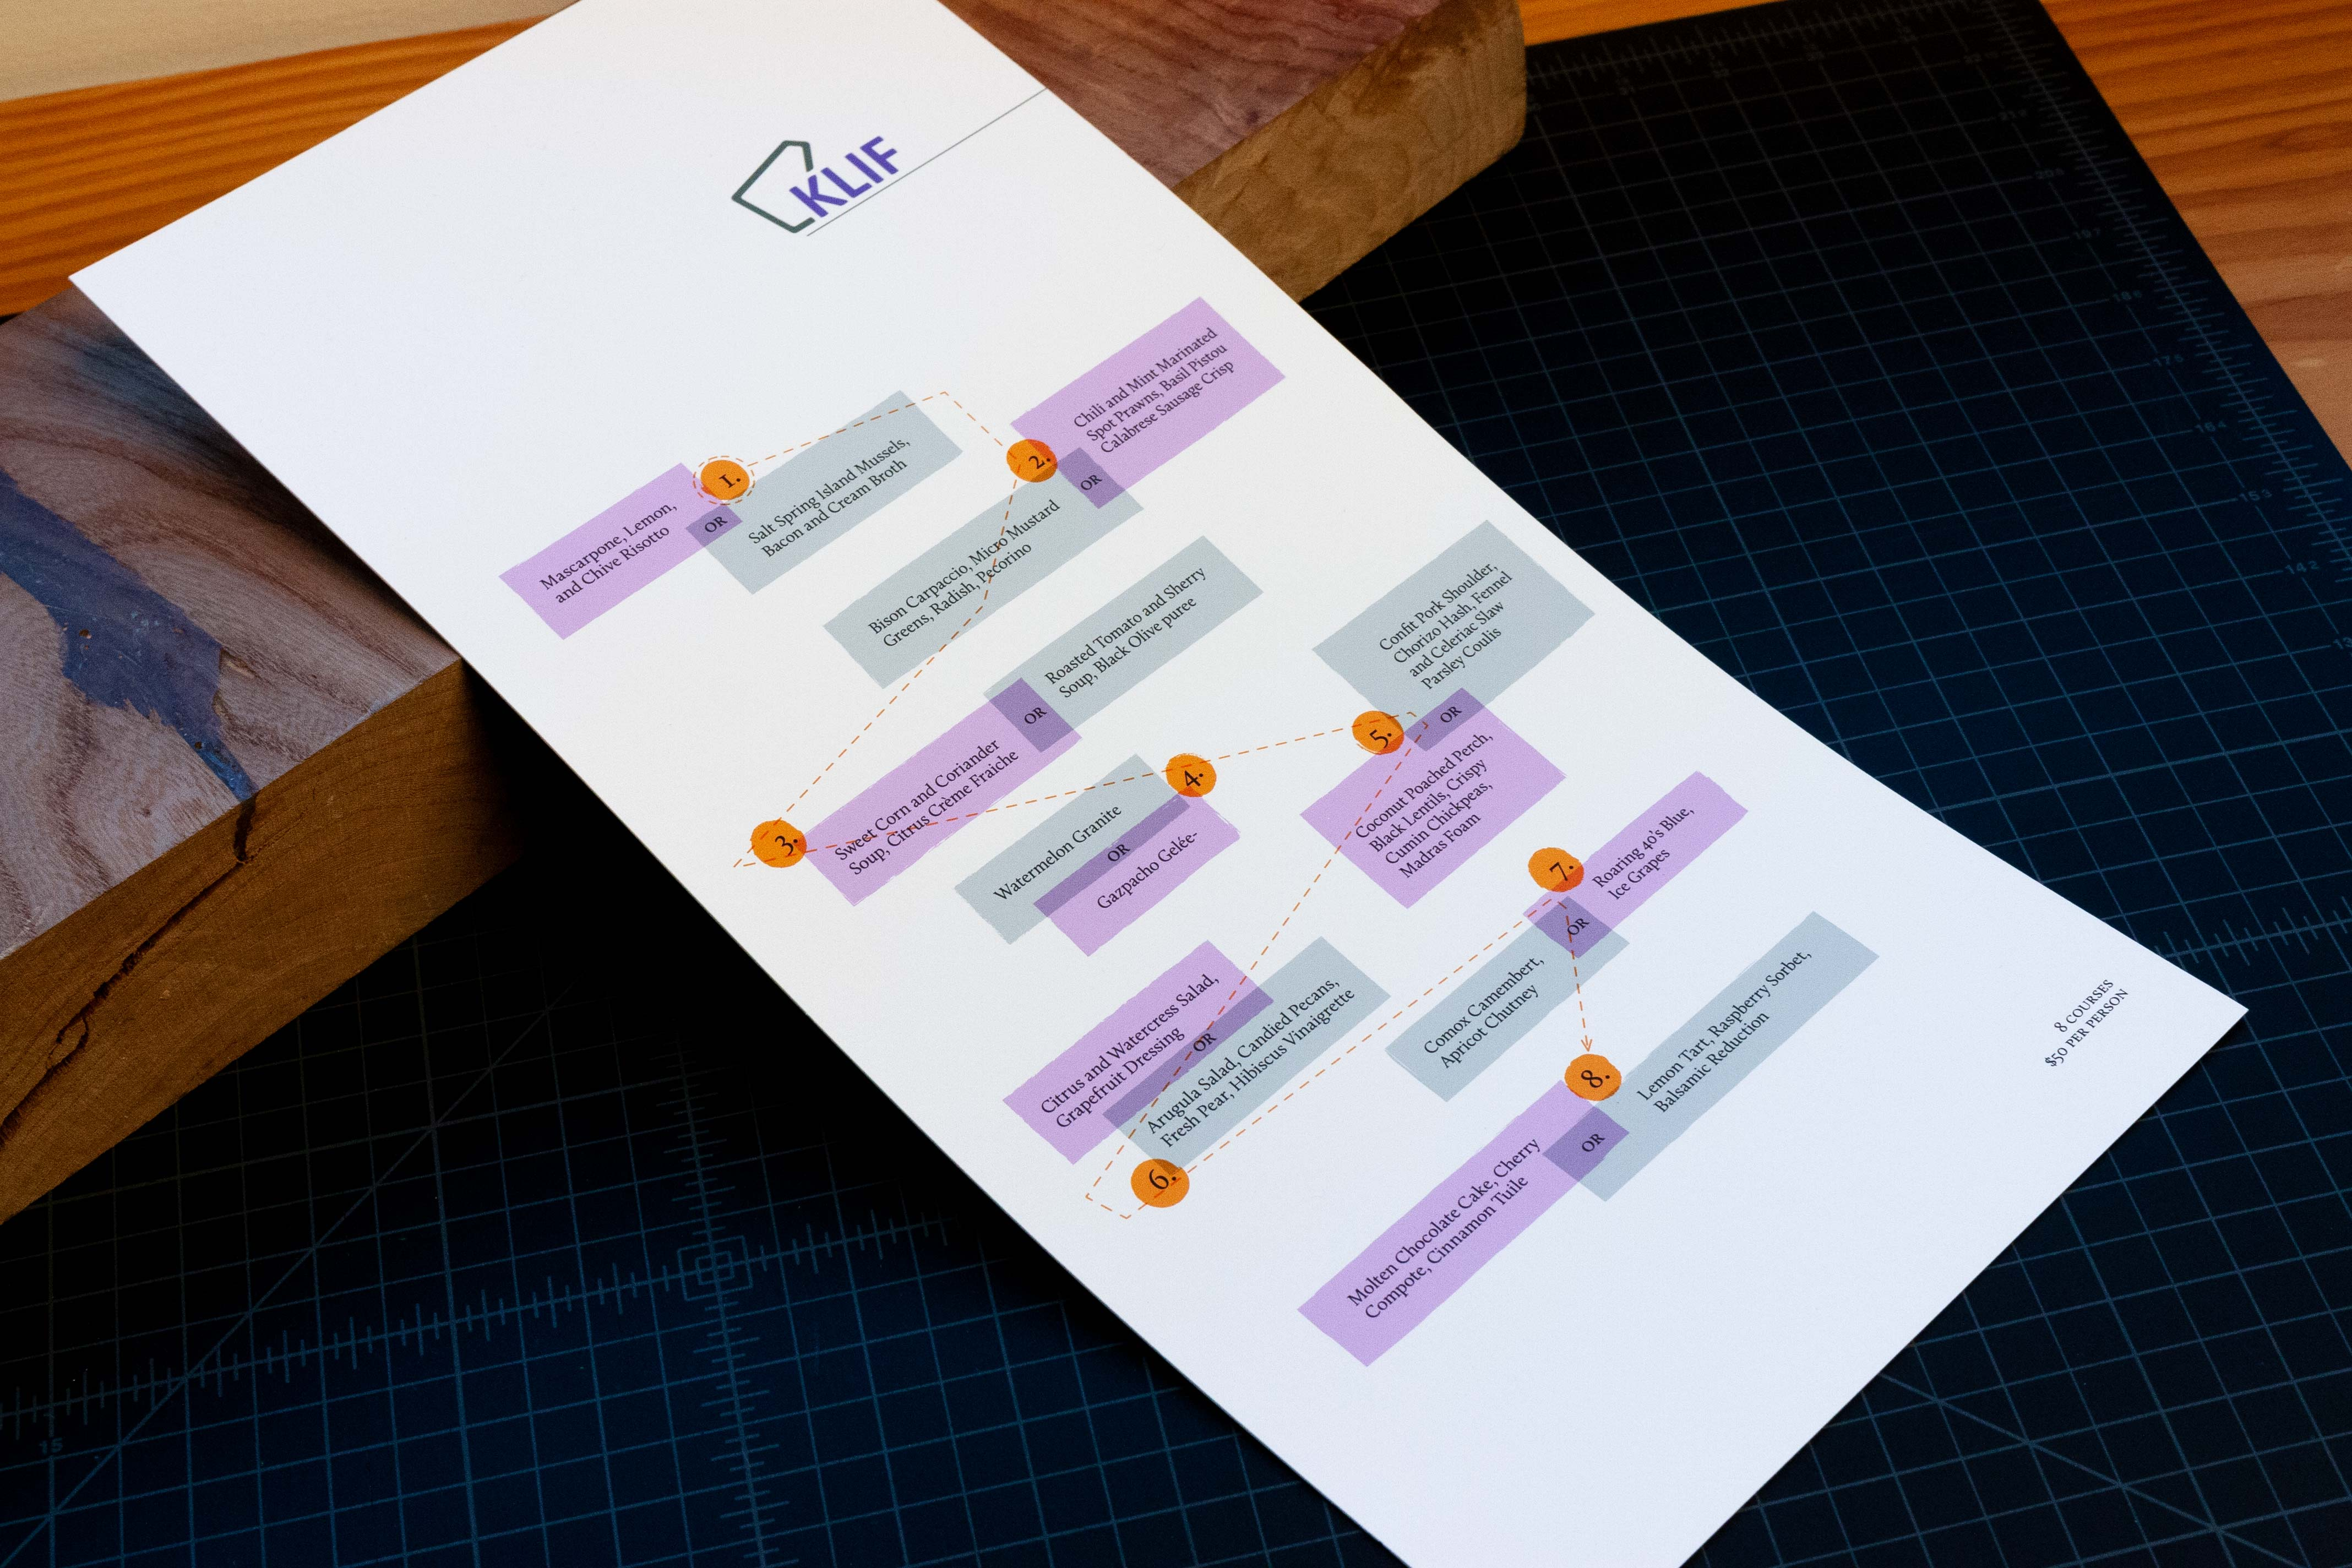 Restaurant Menu with options playfully and asymmetrically arranged on the page in complimenting purple and grey colors — by Yagnyuk.